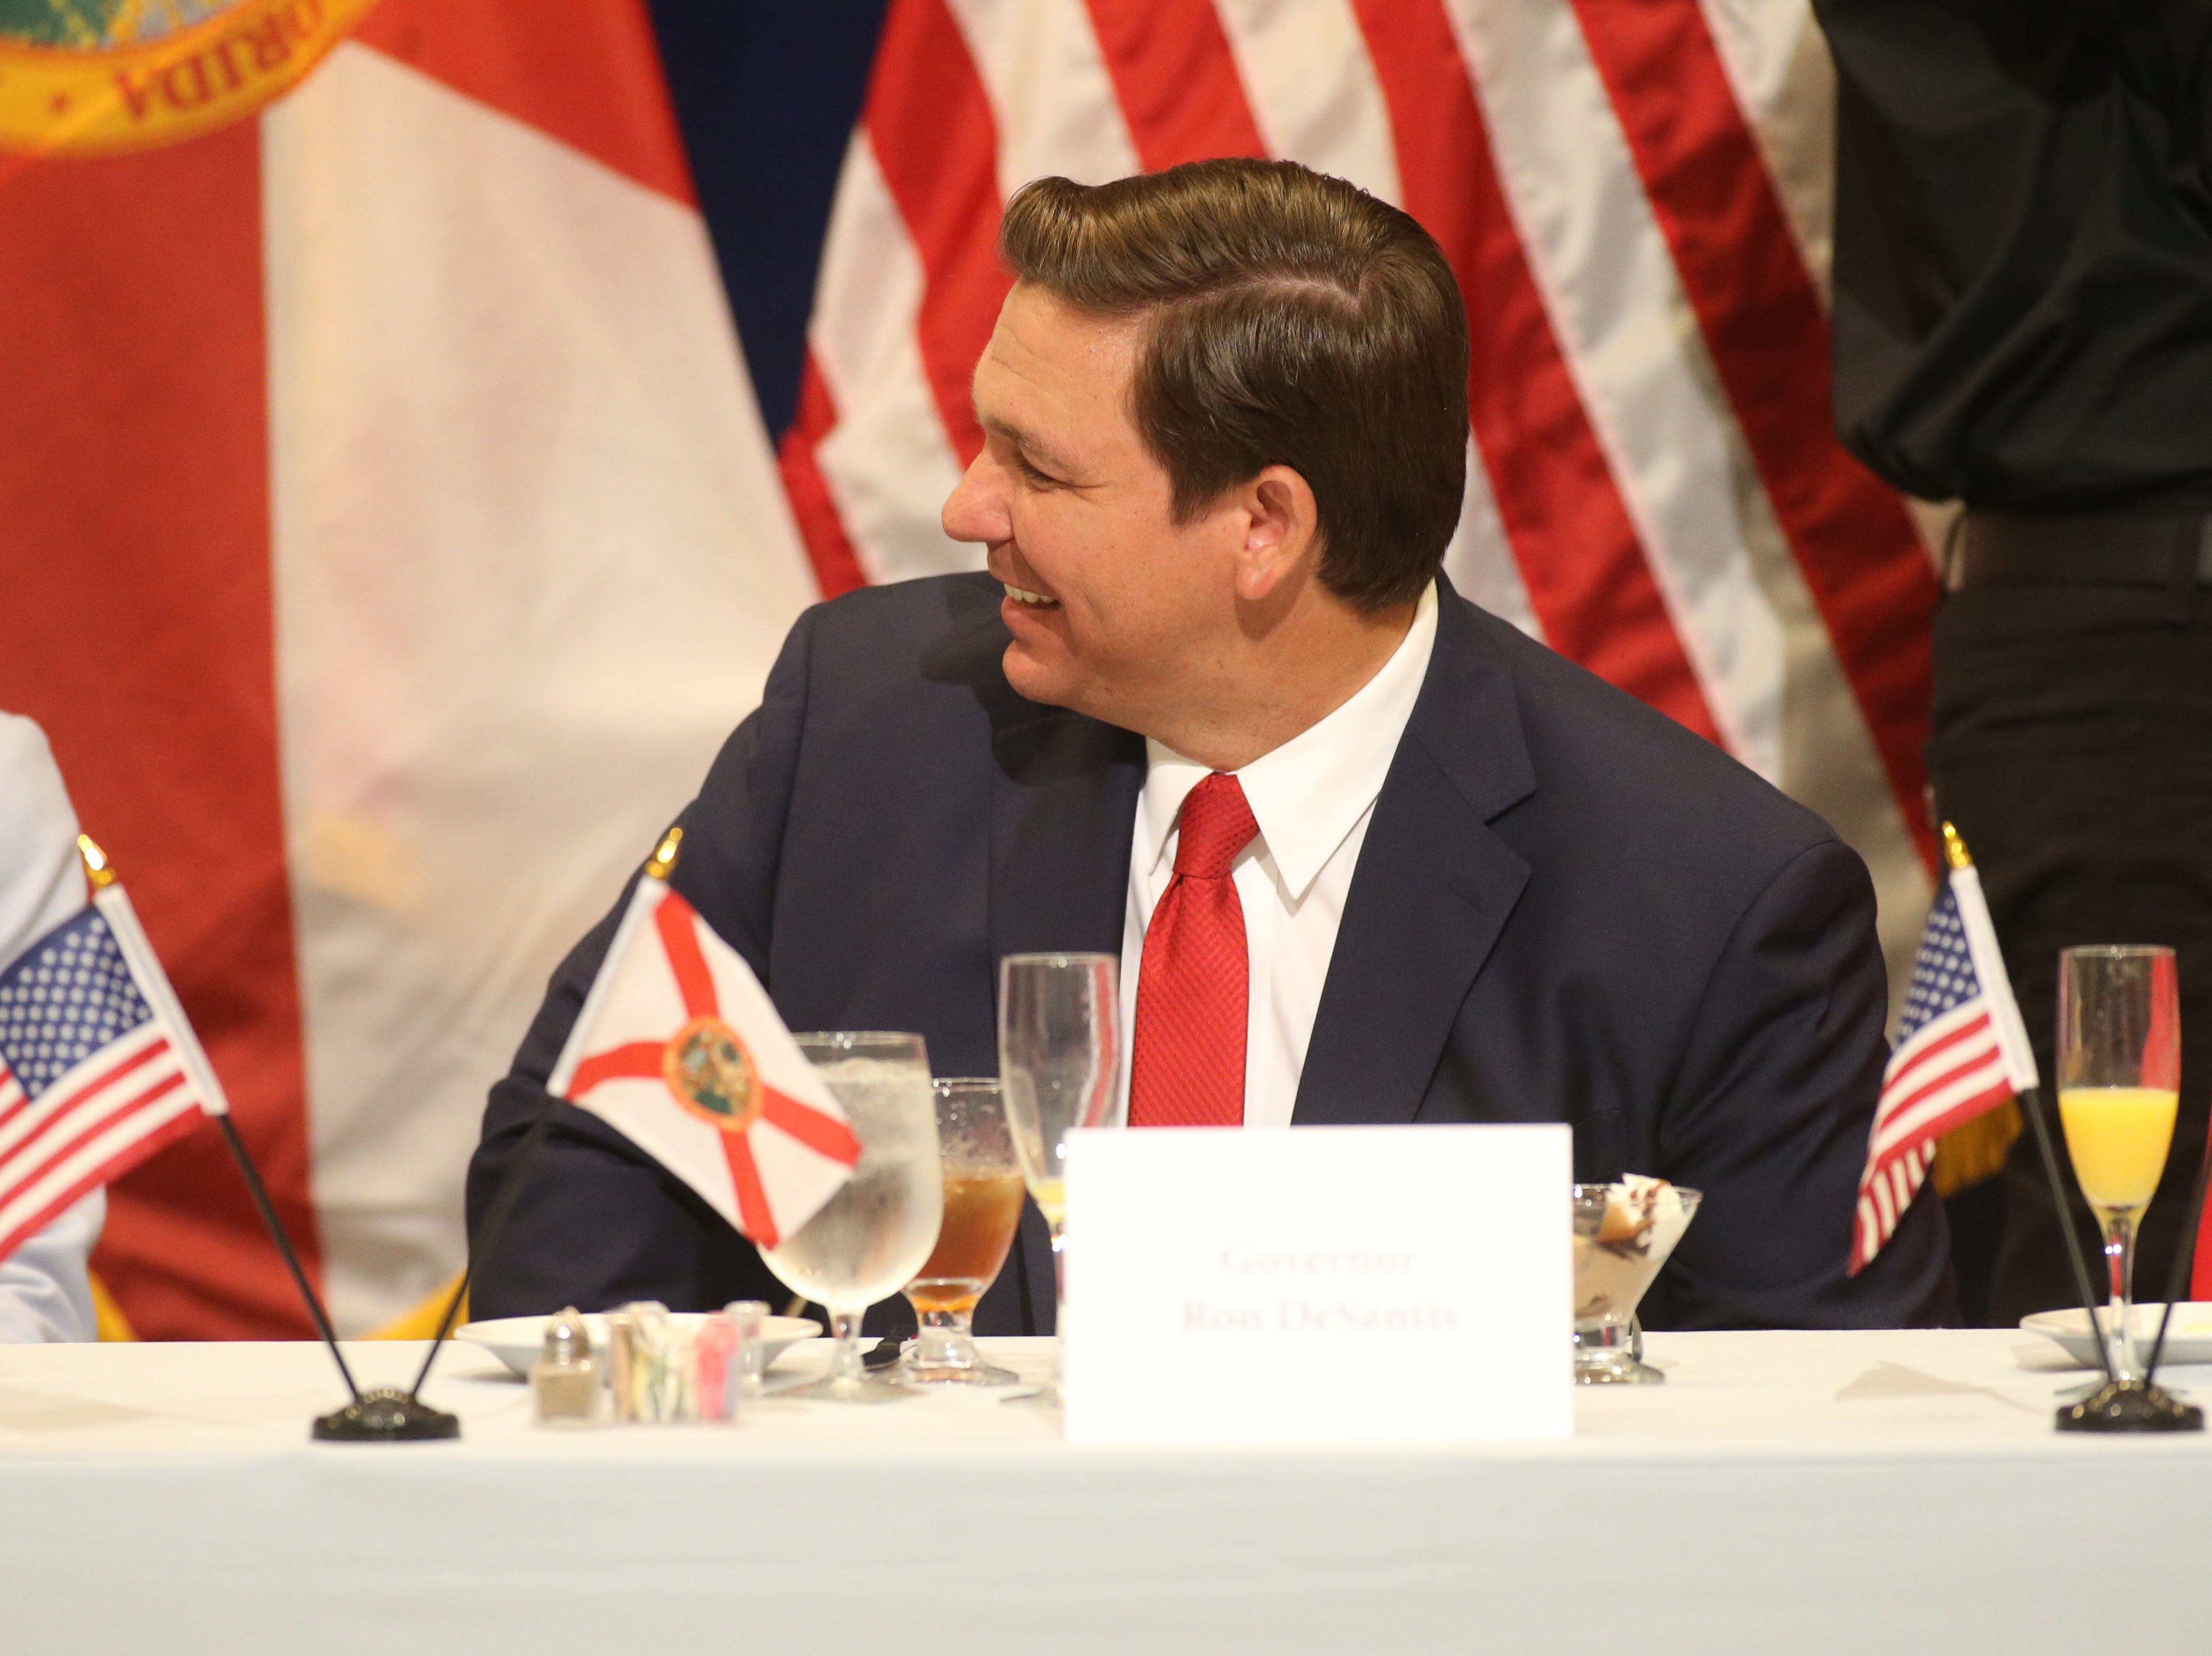 For the first time in Inaugural history, Gov. Ron DeSantis addresses FloridaÕs Legislative leaders and Cabinet officials. DeSantis discusses his plans to work with our stateÕs elected leaders to achieve a Bold Vision for a Brighter Future, Tuesday, Jan. 8, 2019. Gov. Ron DeSantis laughs with guests during the luncheon.